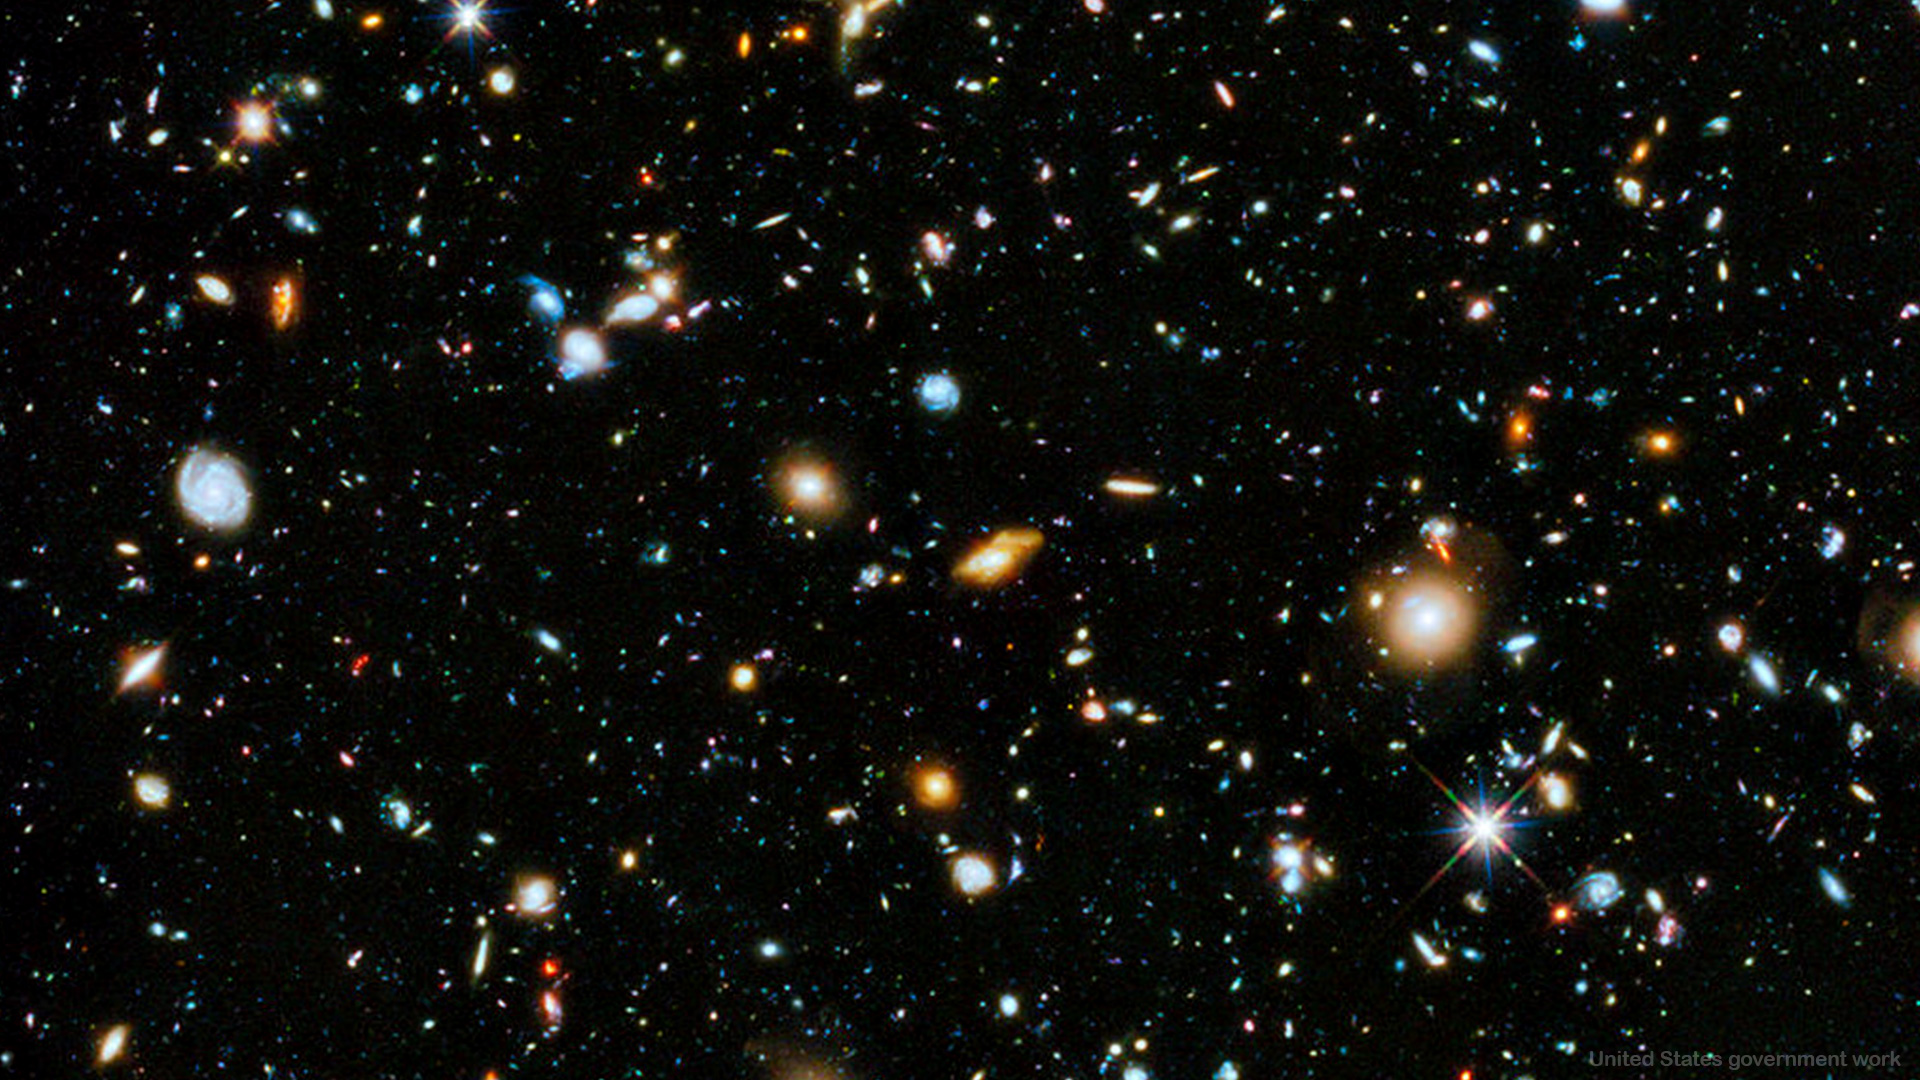 Cluster of Galaxies in Deep Dark space - HD Background